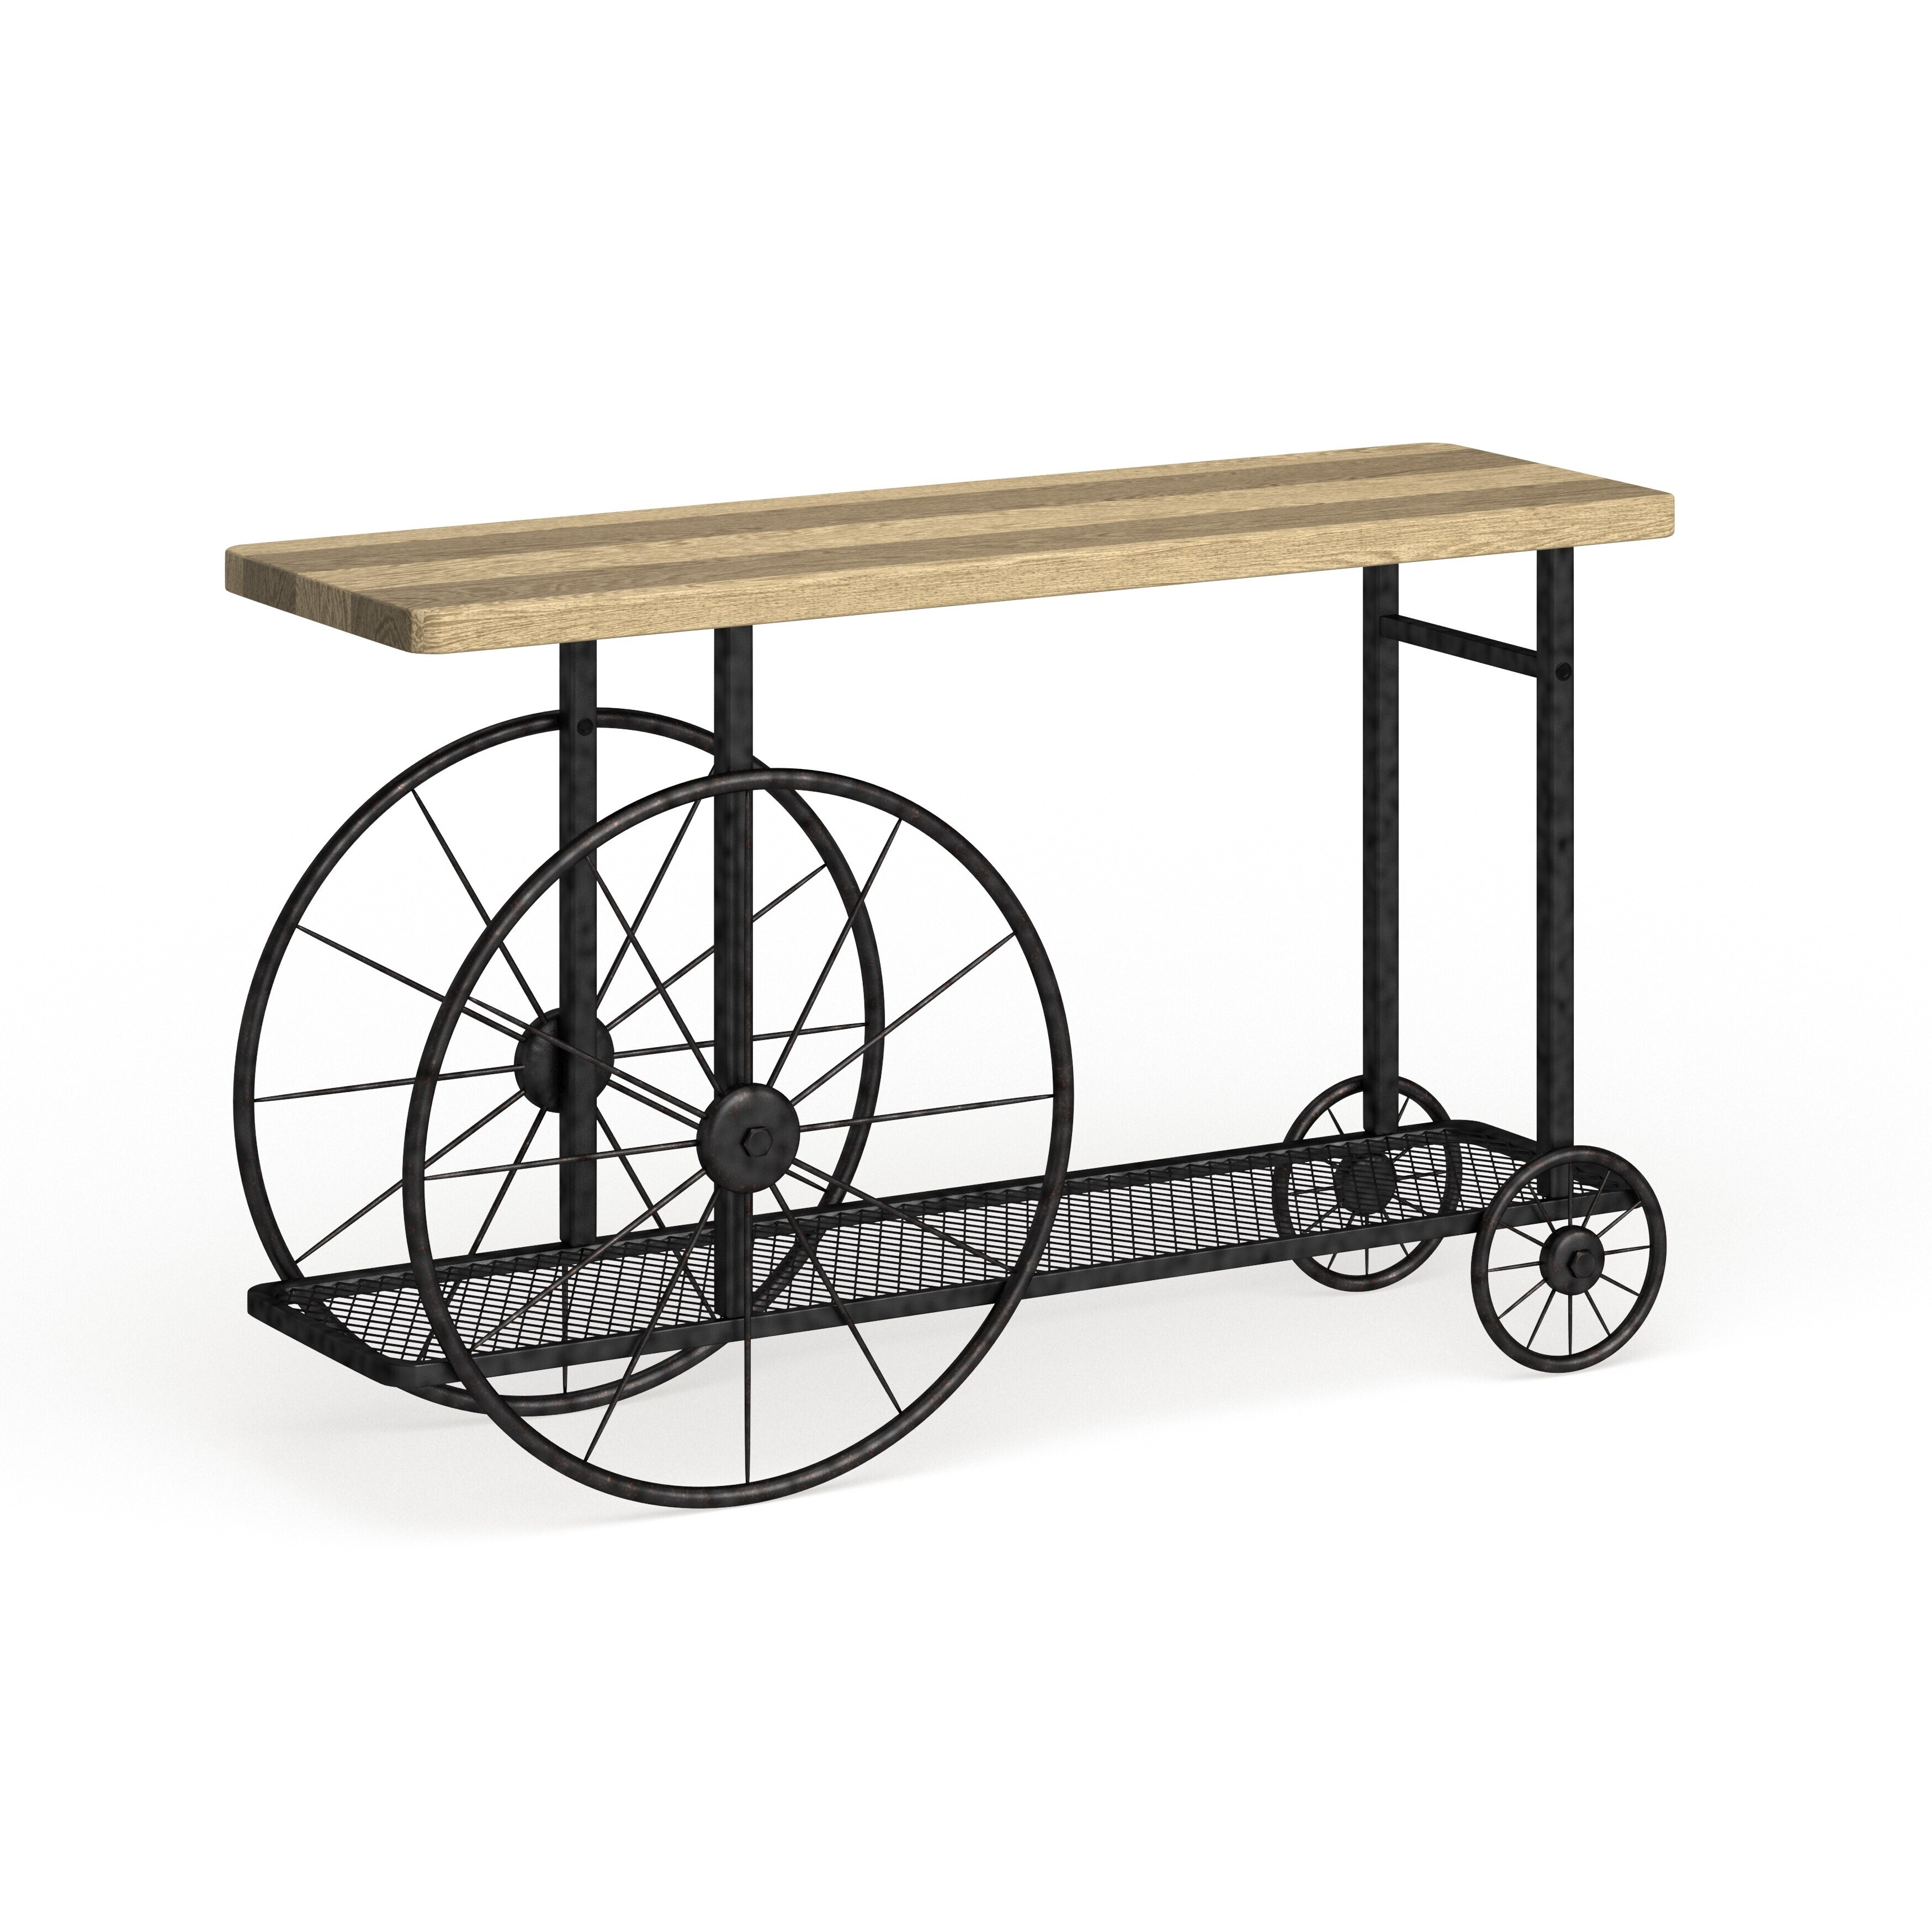 Furniture Of America Sall Industrial Black Metal Wheeled Sofa Table On Sale Overstock 14400023